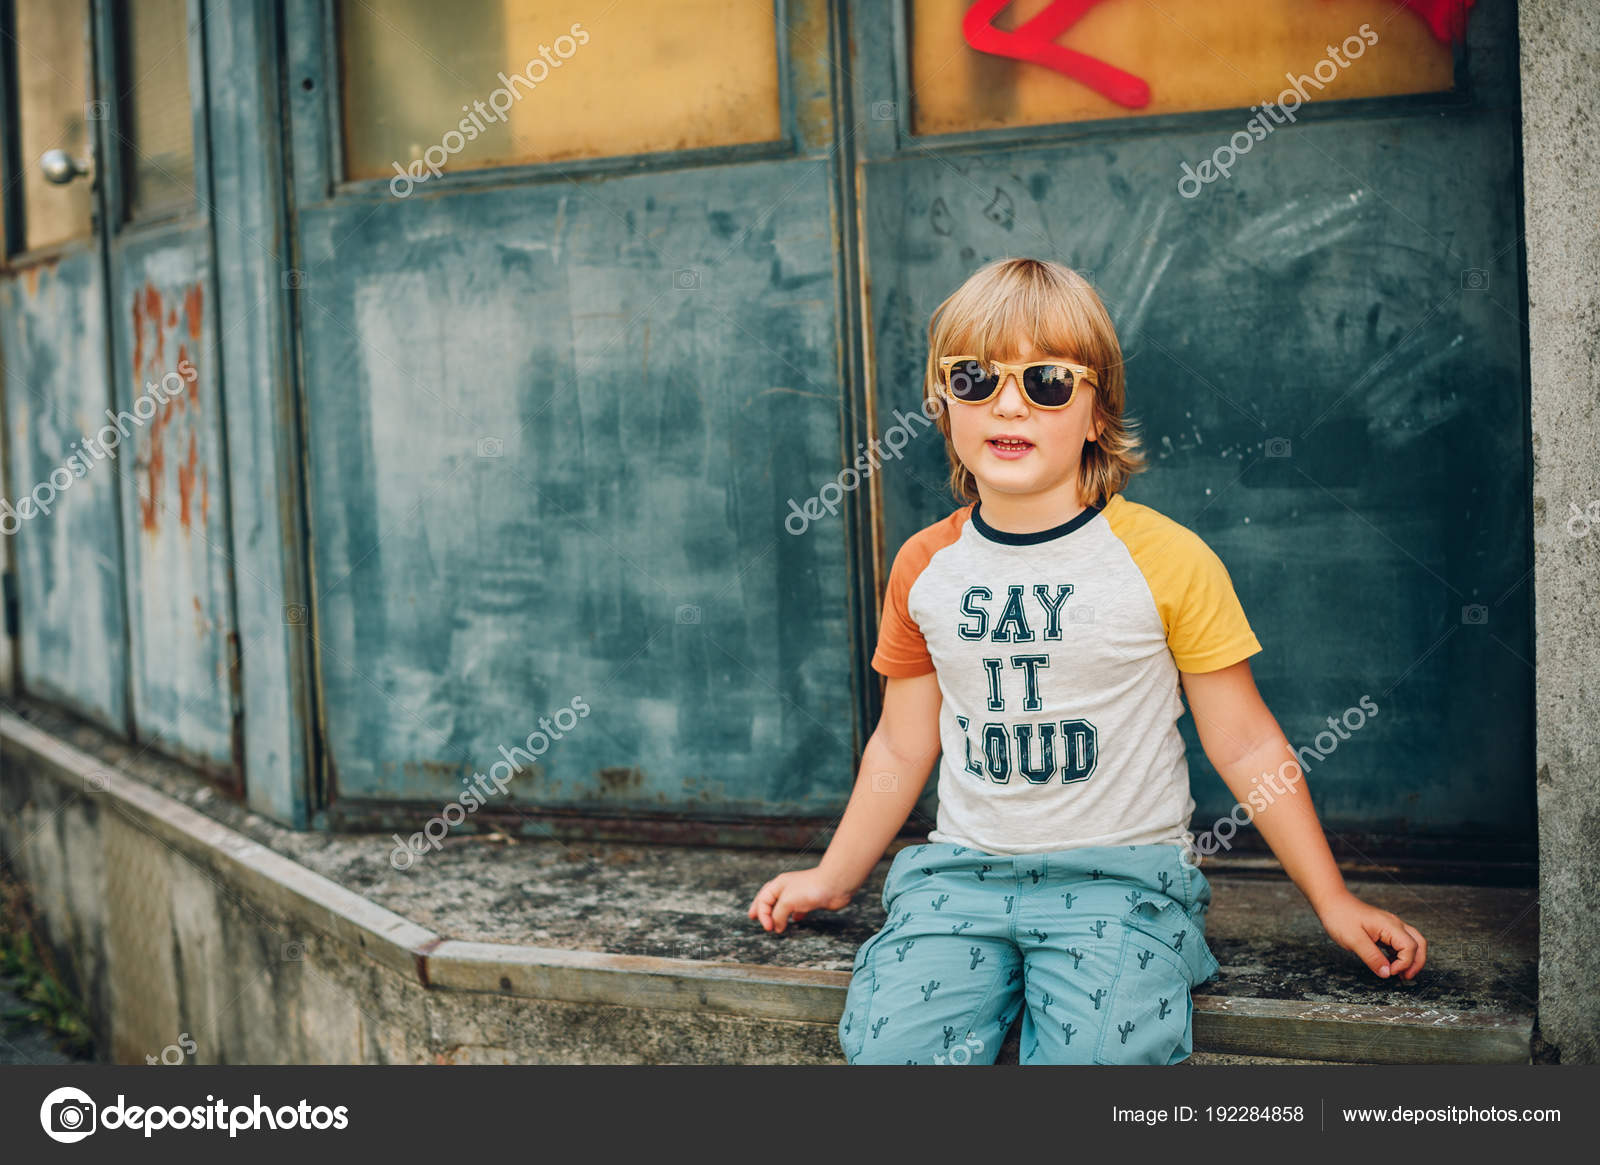 980d76f1a739 Outdoor Portrait Funny Little Boy Wearing Sunglasses Shirt Sign Say — Stock  Photo